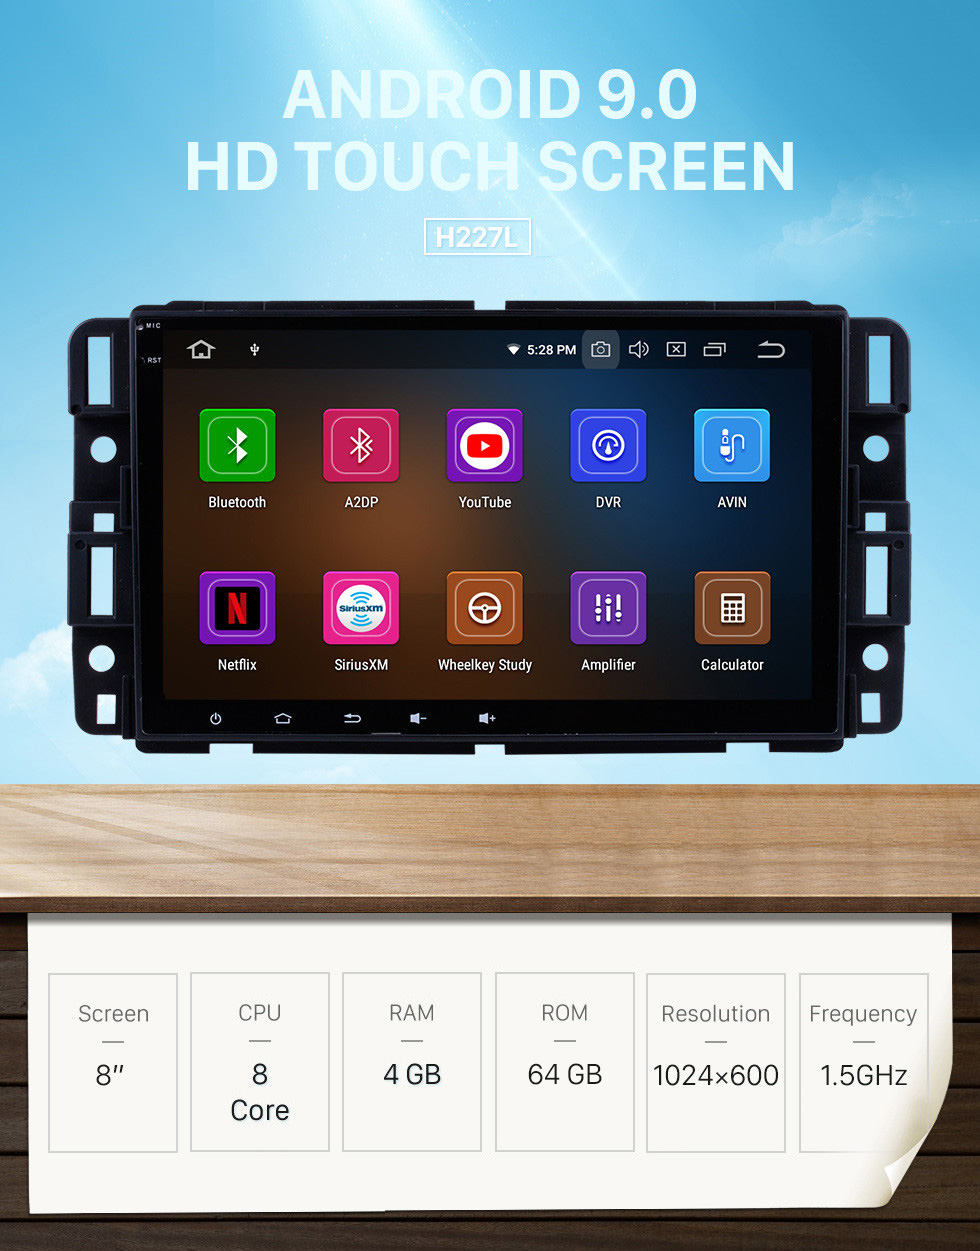 Seicane 8 Inch Android 9.0 Aftermarket Radio HD Touchscreen Head Unit For 2007 2008 2009 2010 2011 GMC Yukon Denali Car Stereo GPS Navigation System Bluetooth Phone WIFI Support OBDII DVR USB Steering Wheel Control Backup Camera